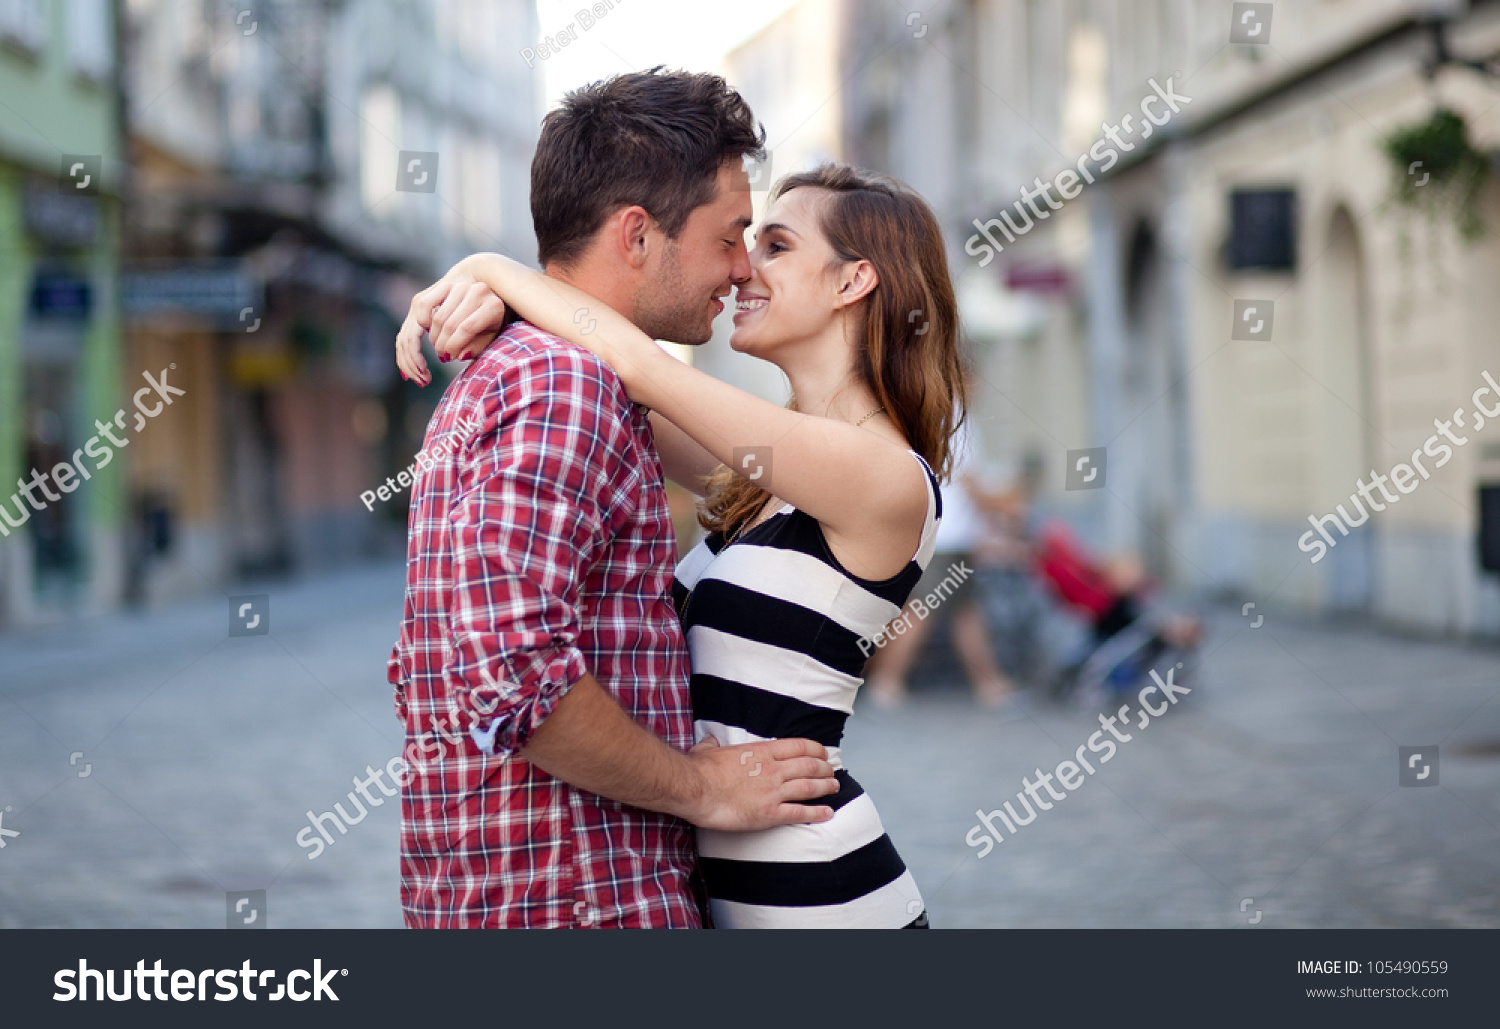 love young couple in - photo #39